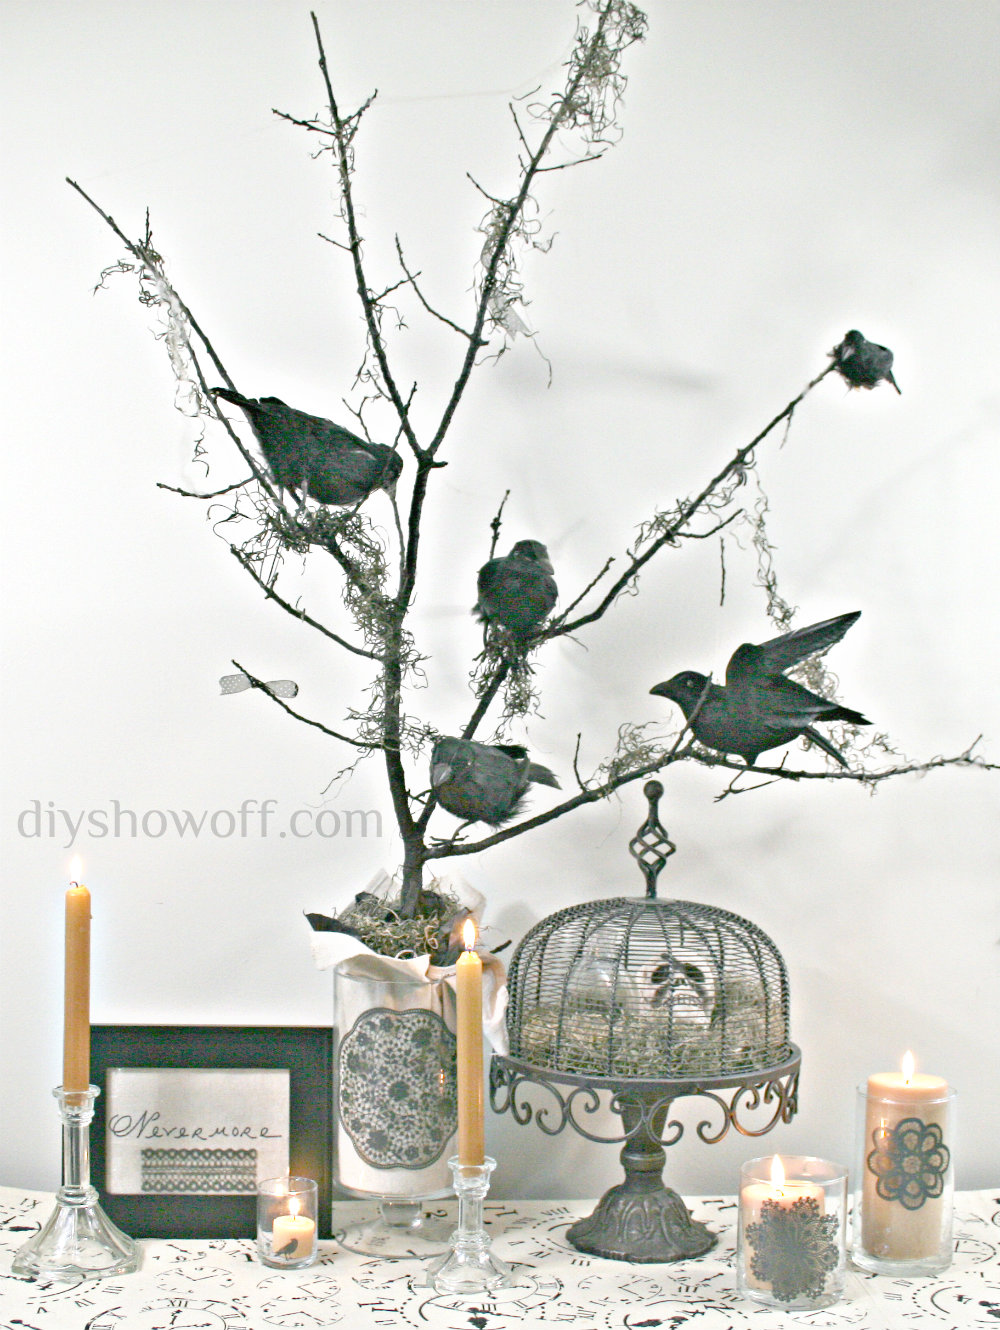 Diy halloween nevermore tree decordiy show off diy decorating diy halloween nevermore tree solutioingenieria Images